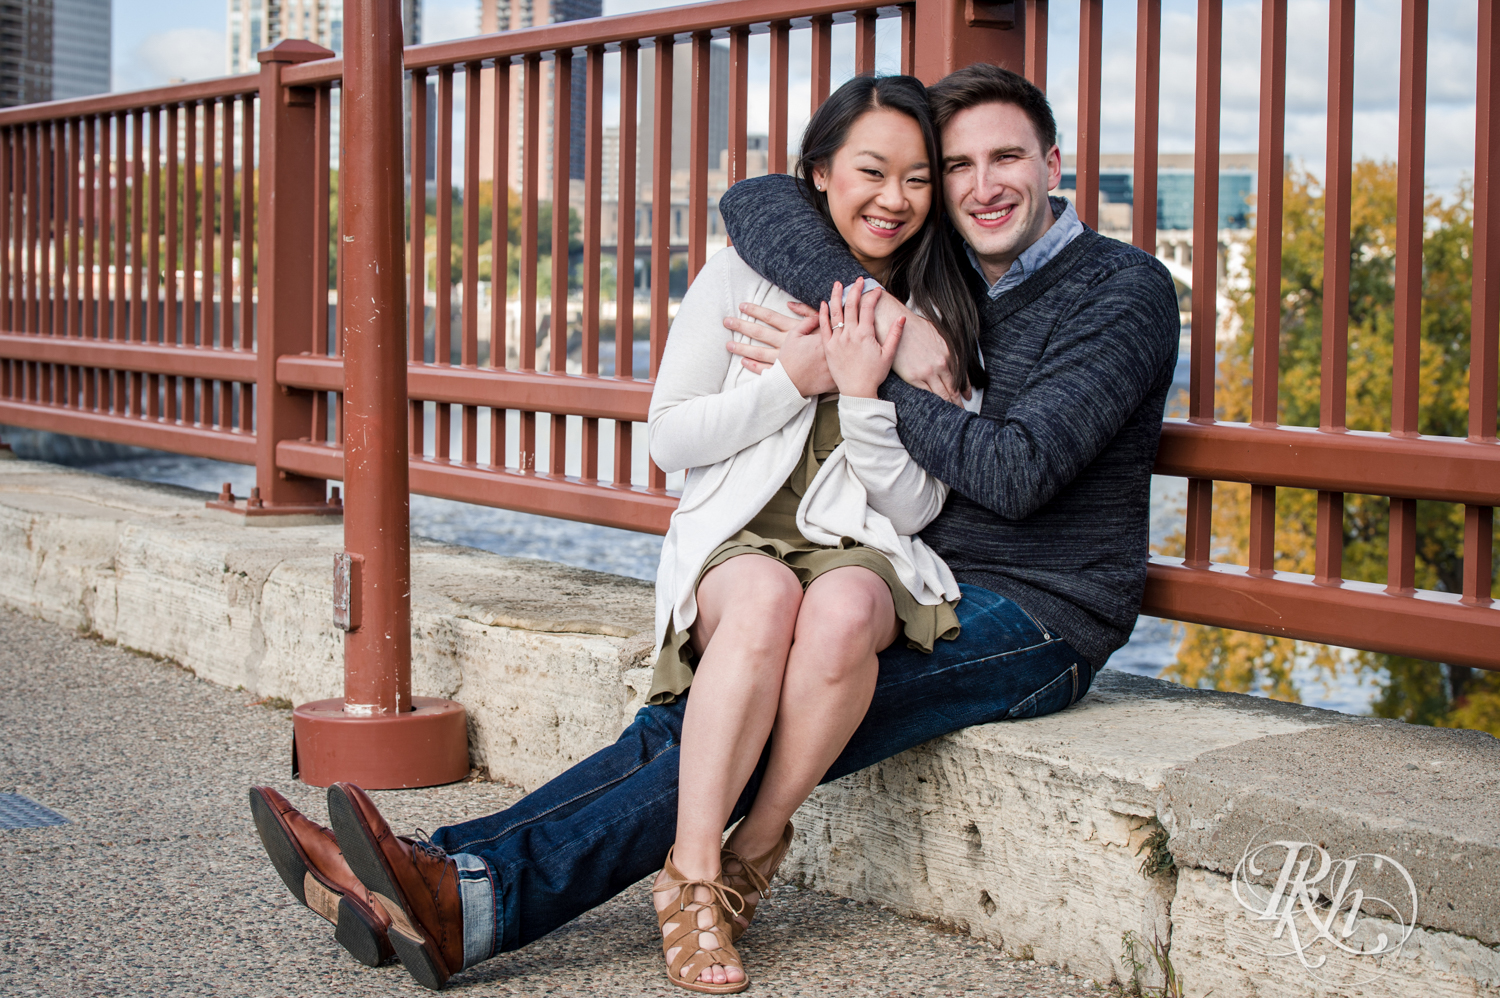 Courtney and Nick - Minnesota Engagement Photography - Stone Arch Bride - RKH Images (2 of 14).jpg